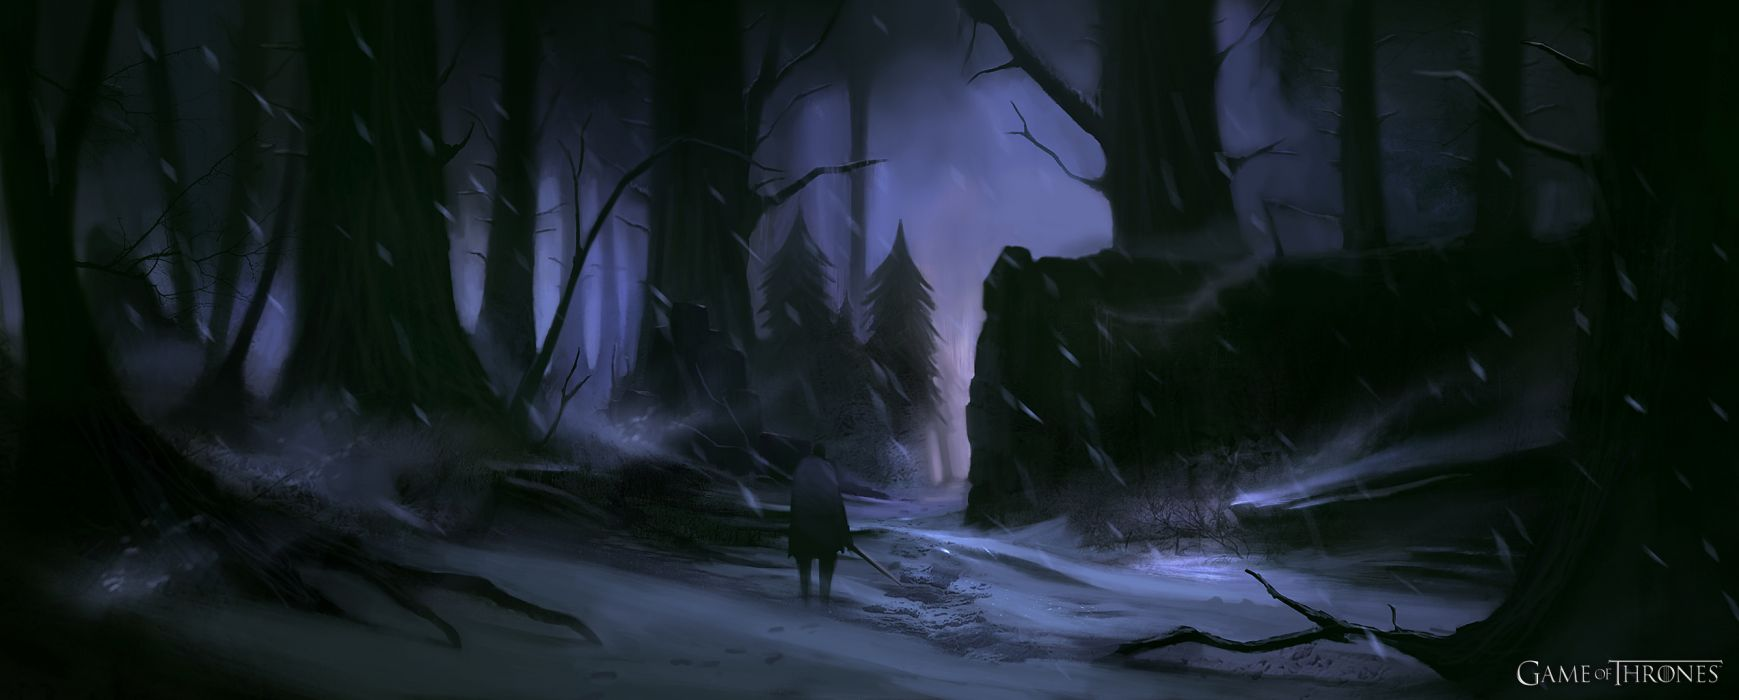 Game Of Thrones Fantasy Art Trees Forest Wallpaper 2544x1024